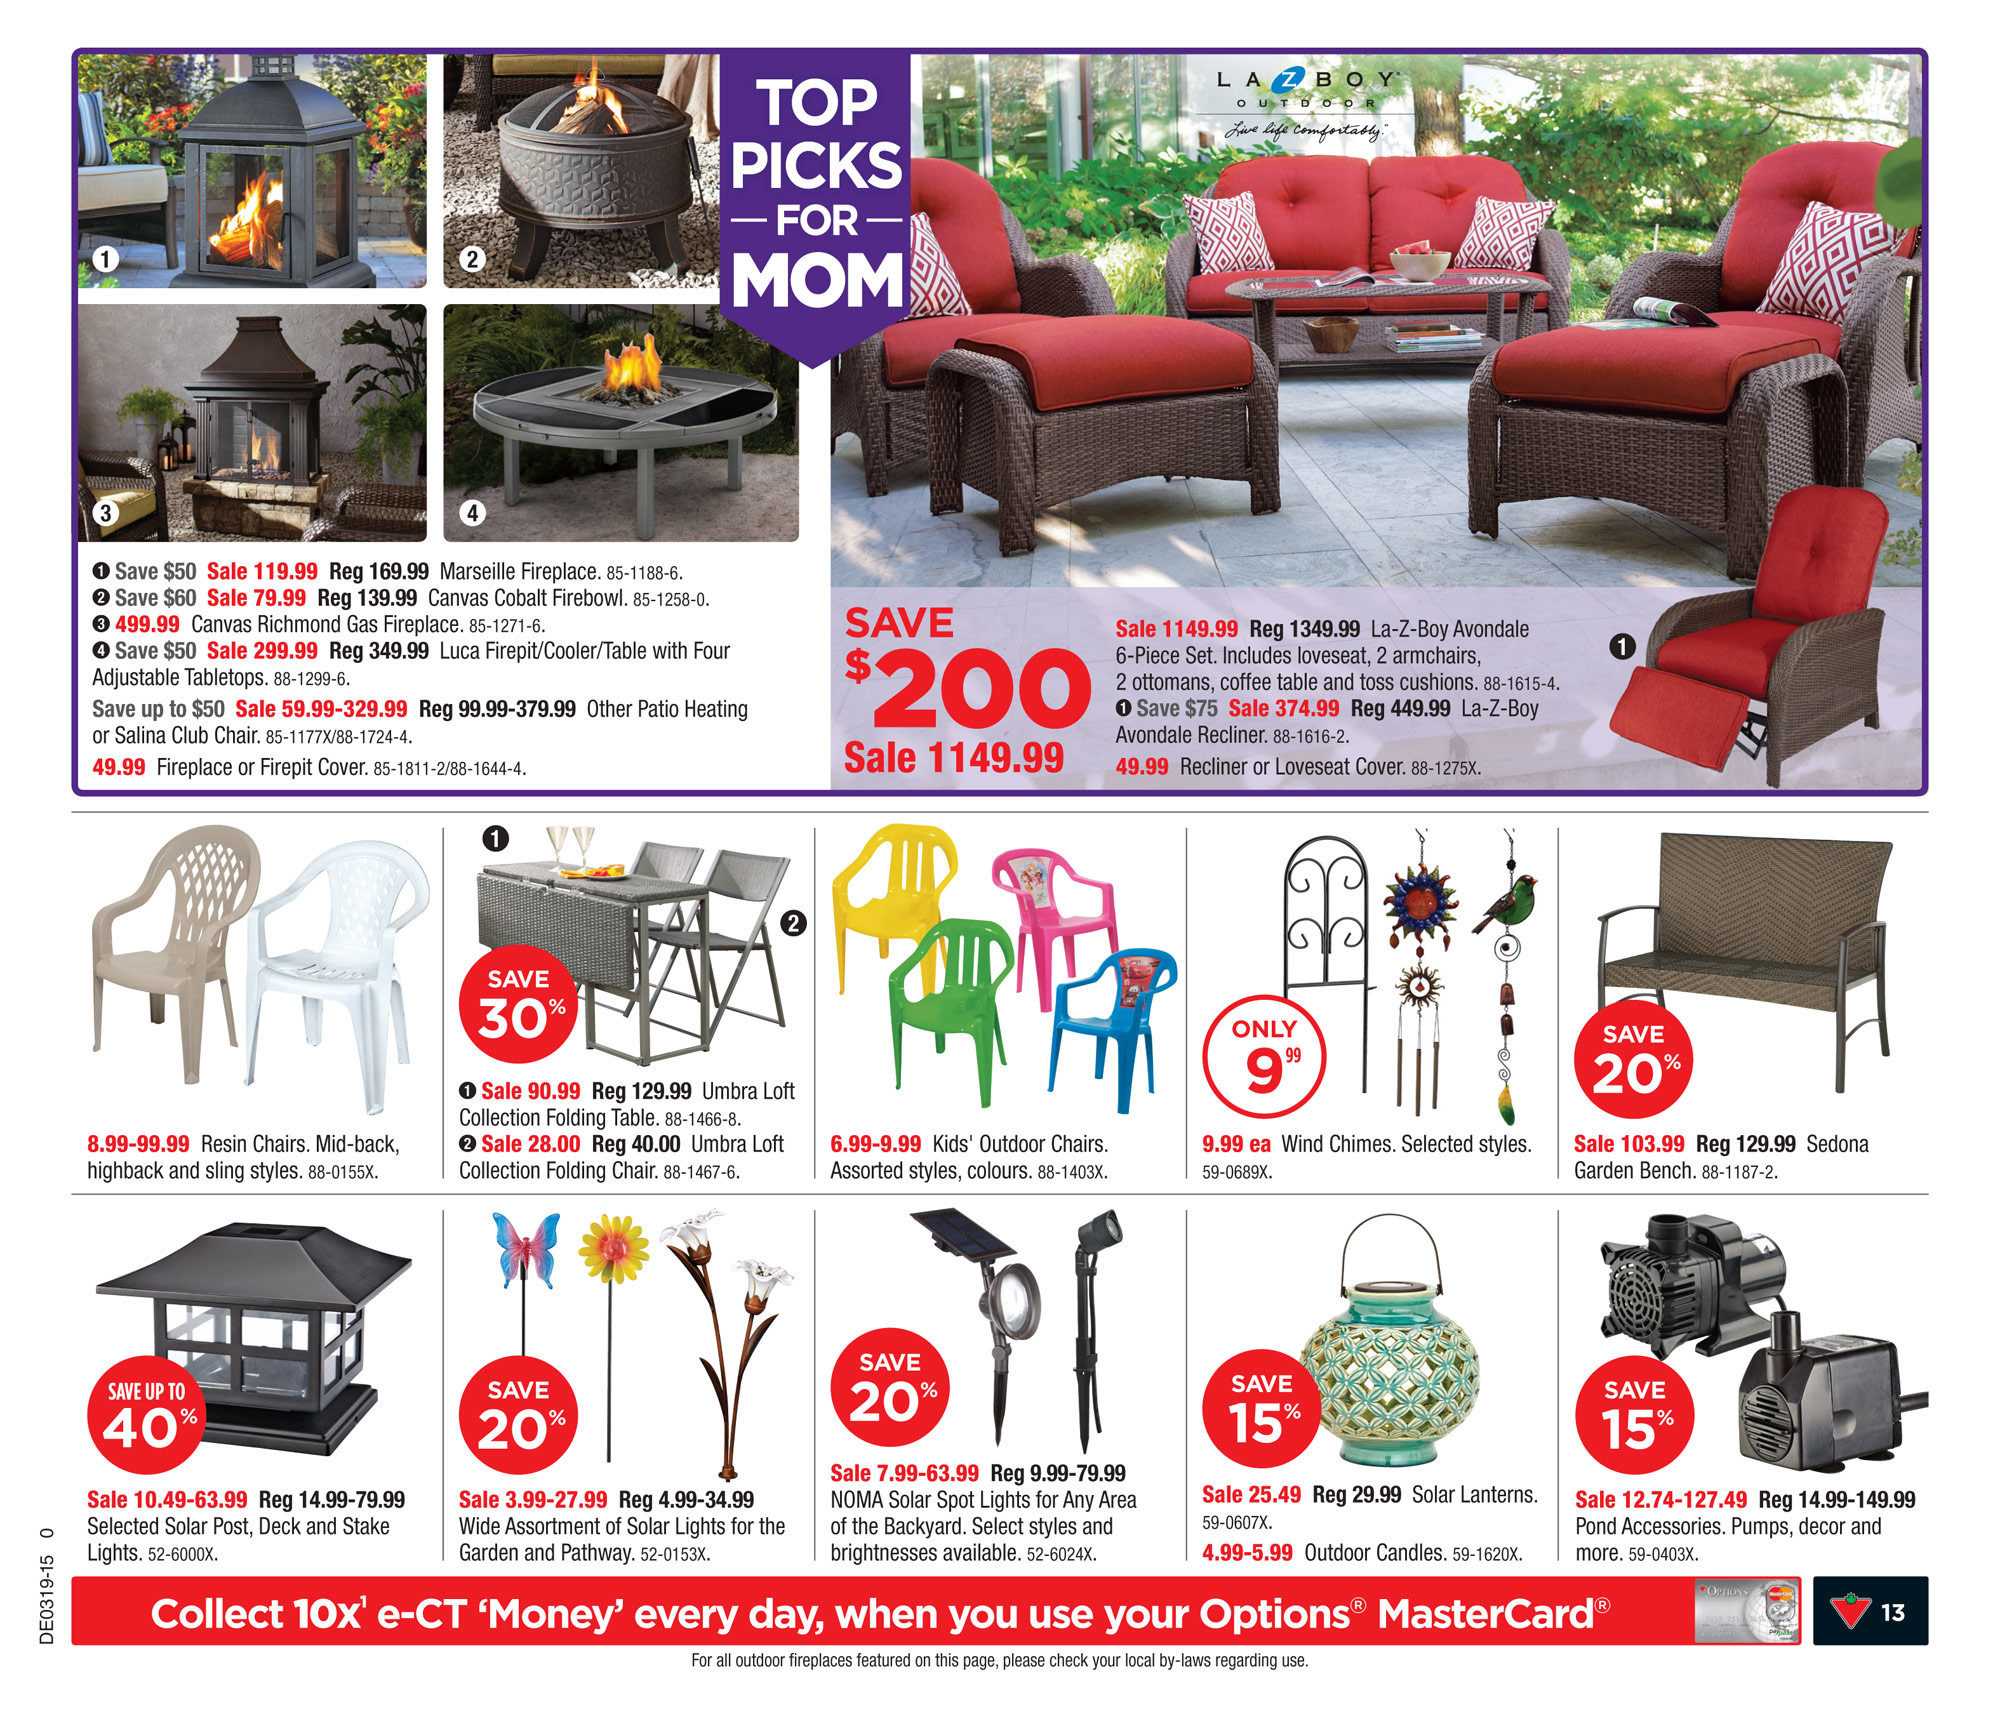 Canadian Tire Weekly Flyer - Weekly Flyer - May 8 – 14 - RedFlagDeals.com